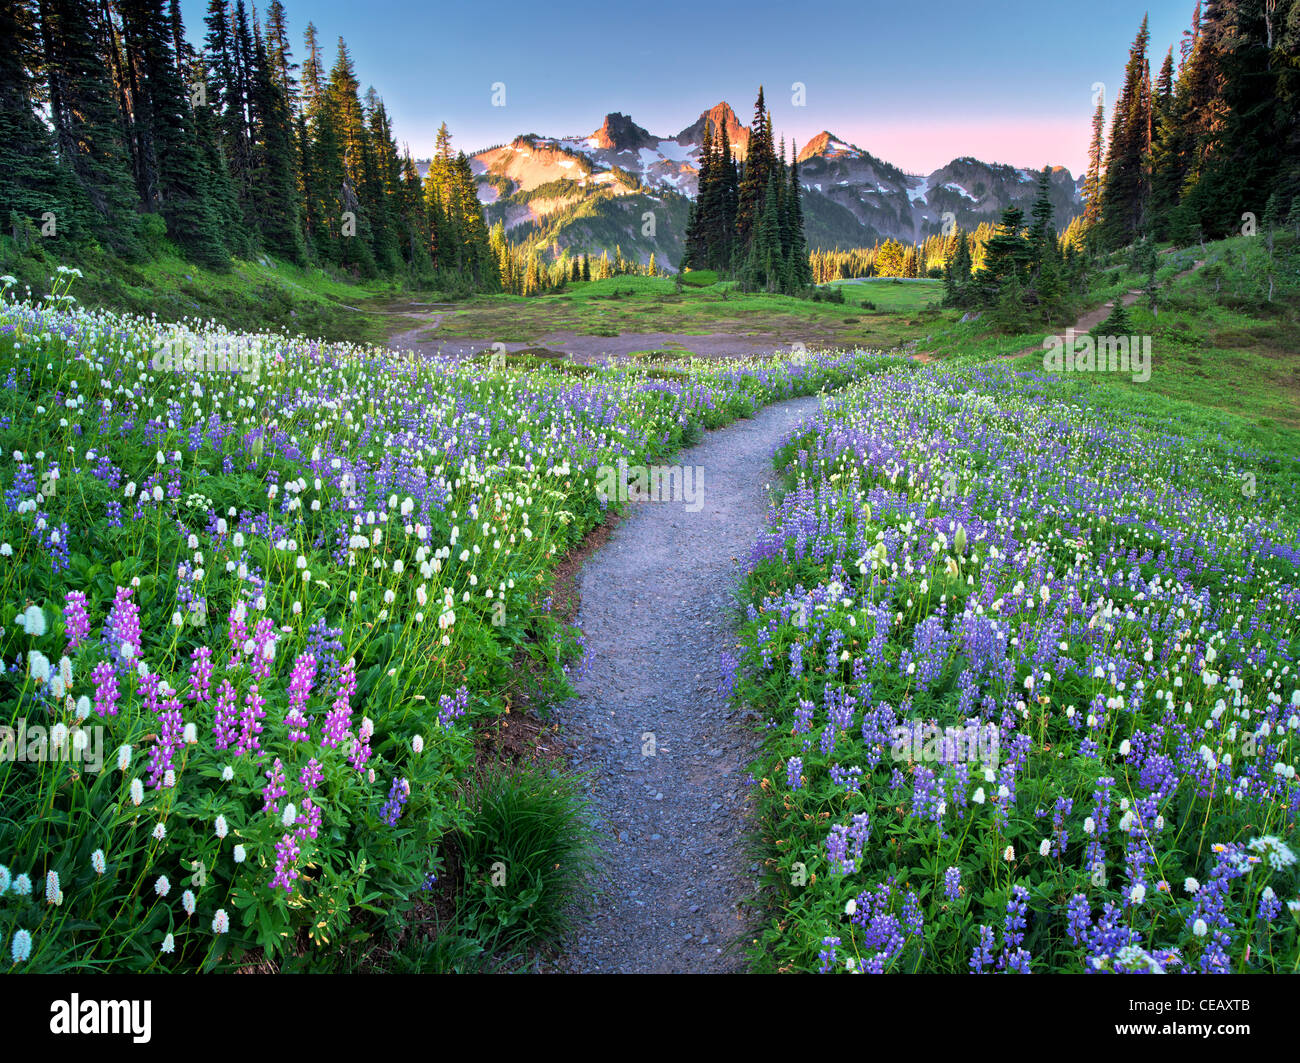 Wildflowers, path and Tatoosh Mountains. Mt Rainier National Park, Washington - Stock Image